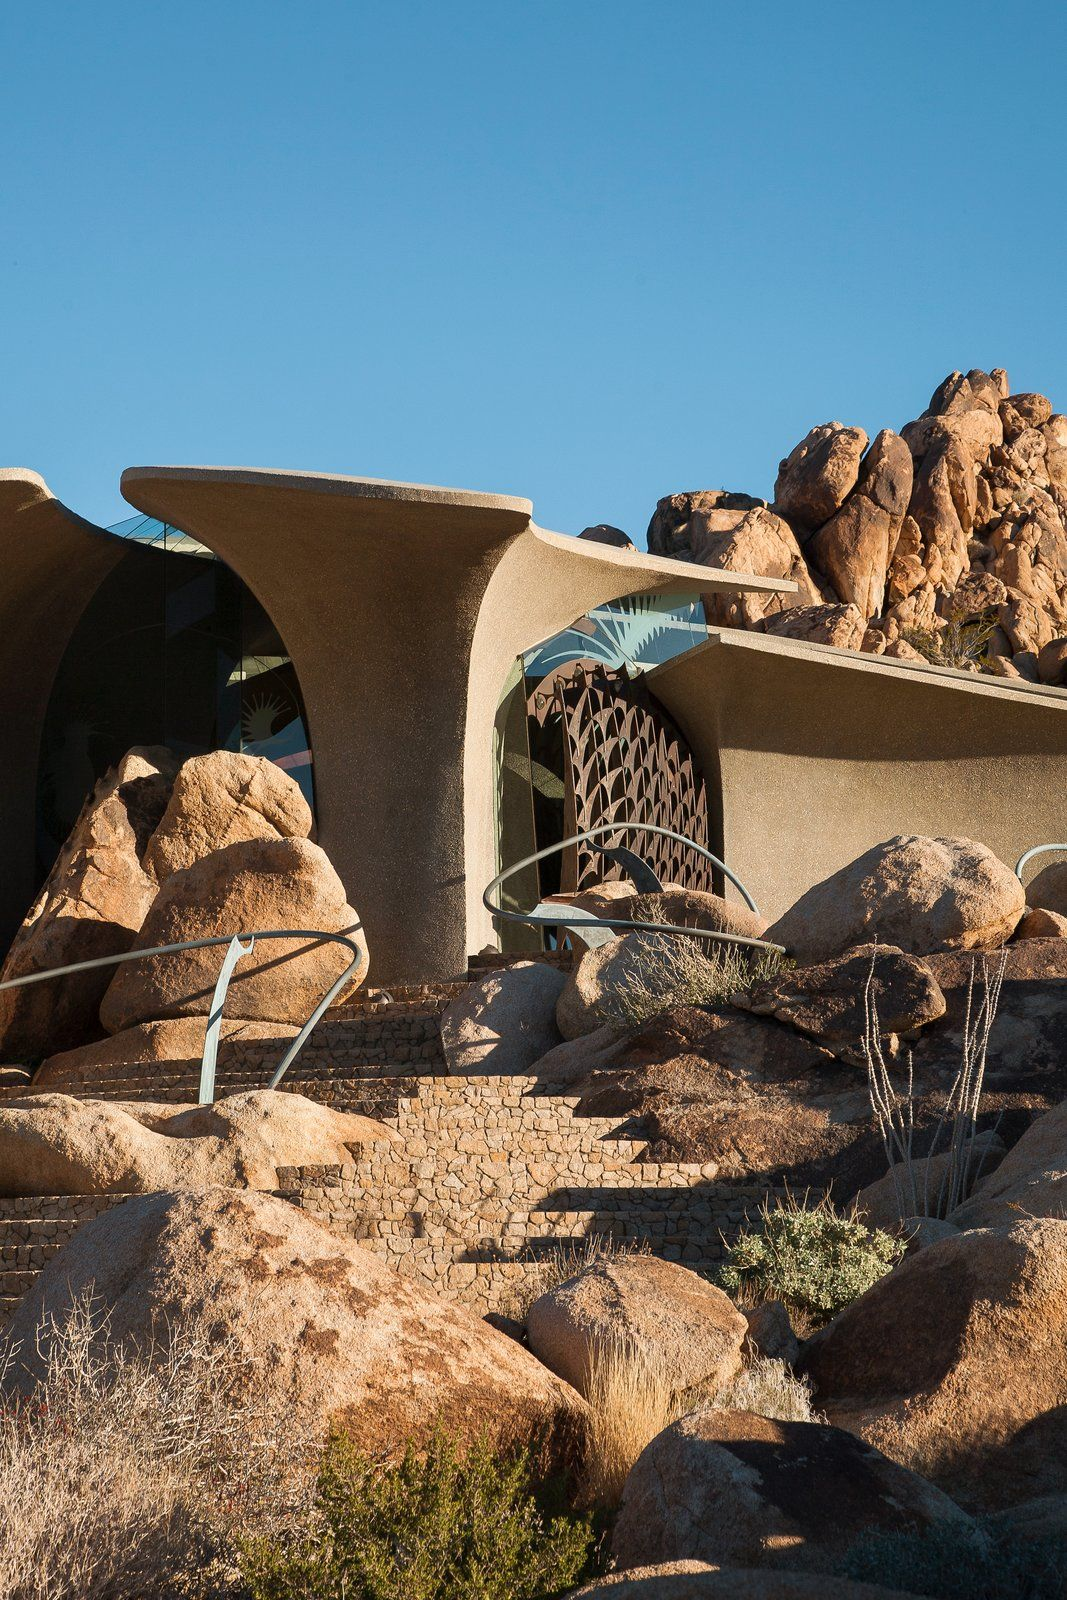 High desert house in joshua tree is an otherworldly architectural icon dwell moderndeserthomes kendrickbangskellogg